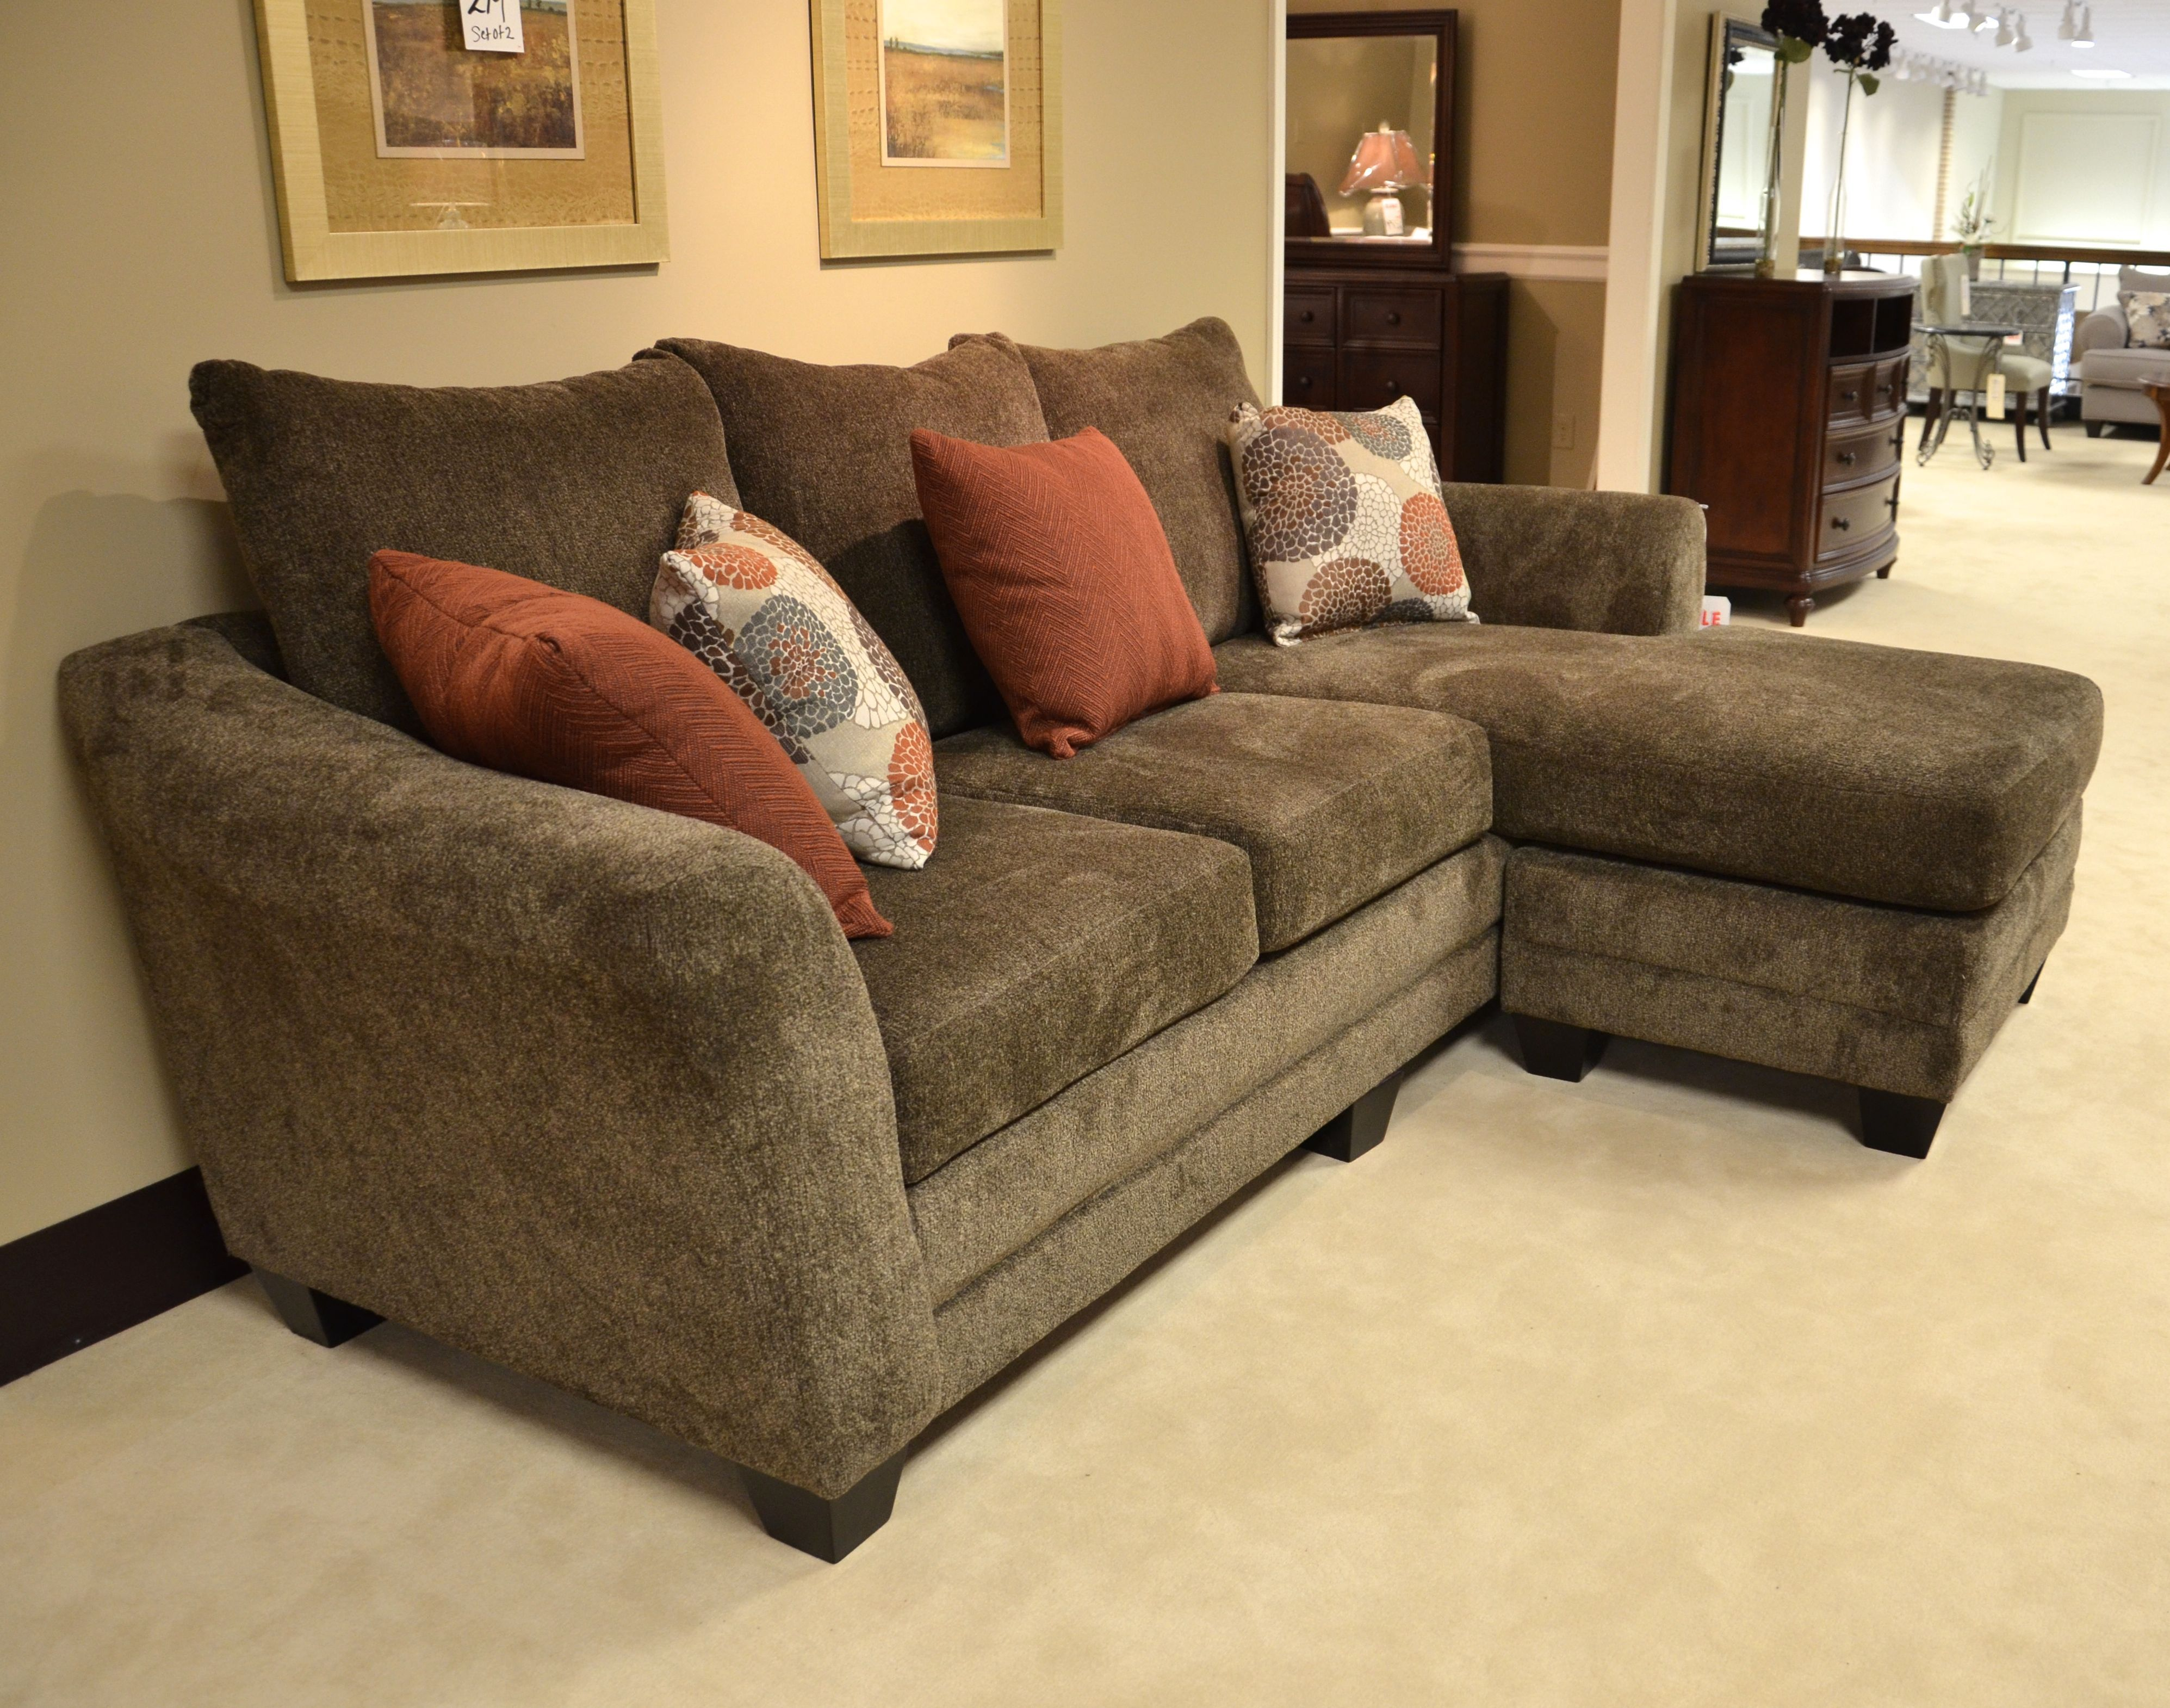 Cocoa brown sofa sectional is fy and super functional